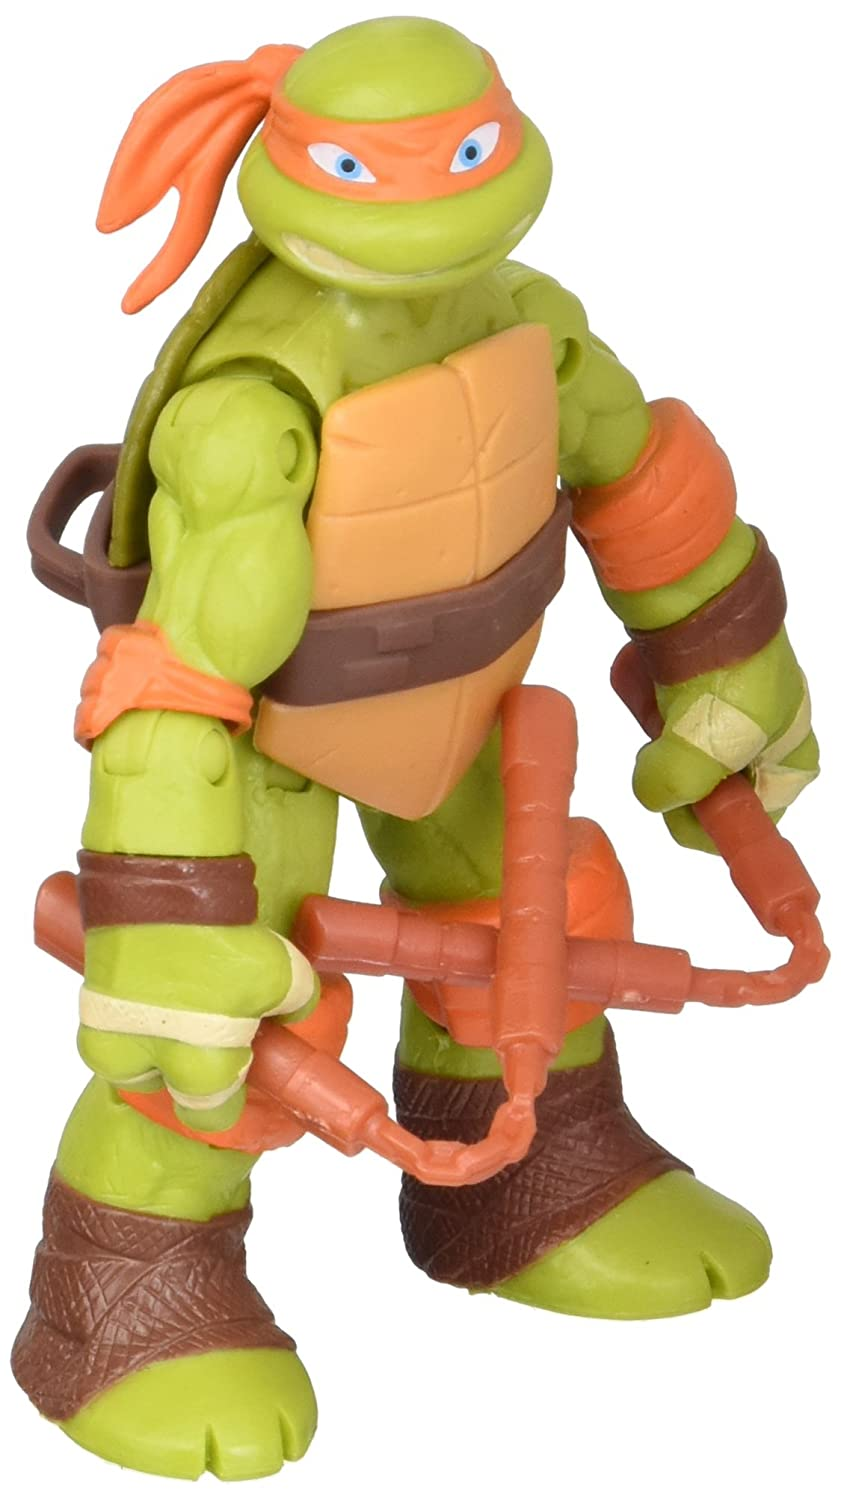 Teenage Mutant Ninja Turtles Michelangelo Action Figure Playmates Toys 90646